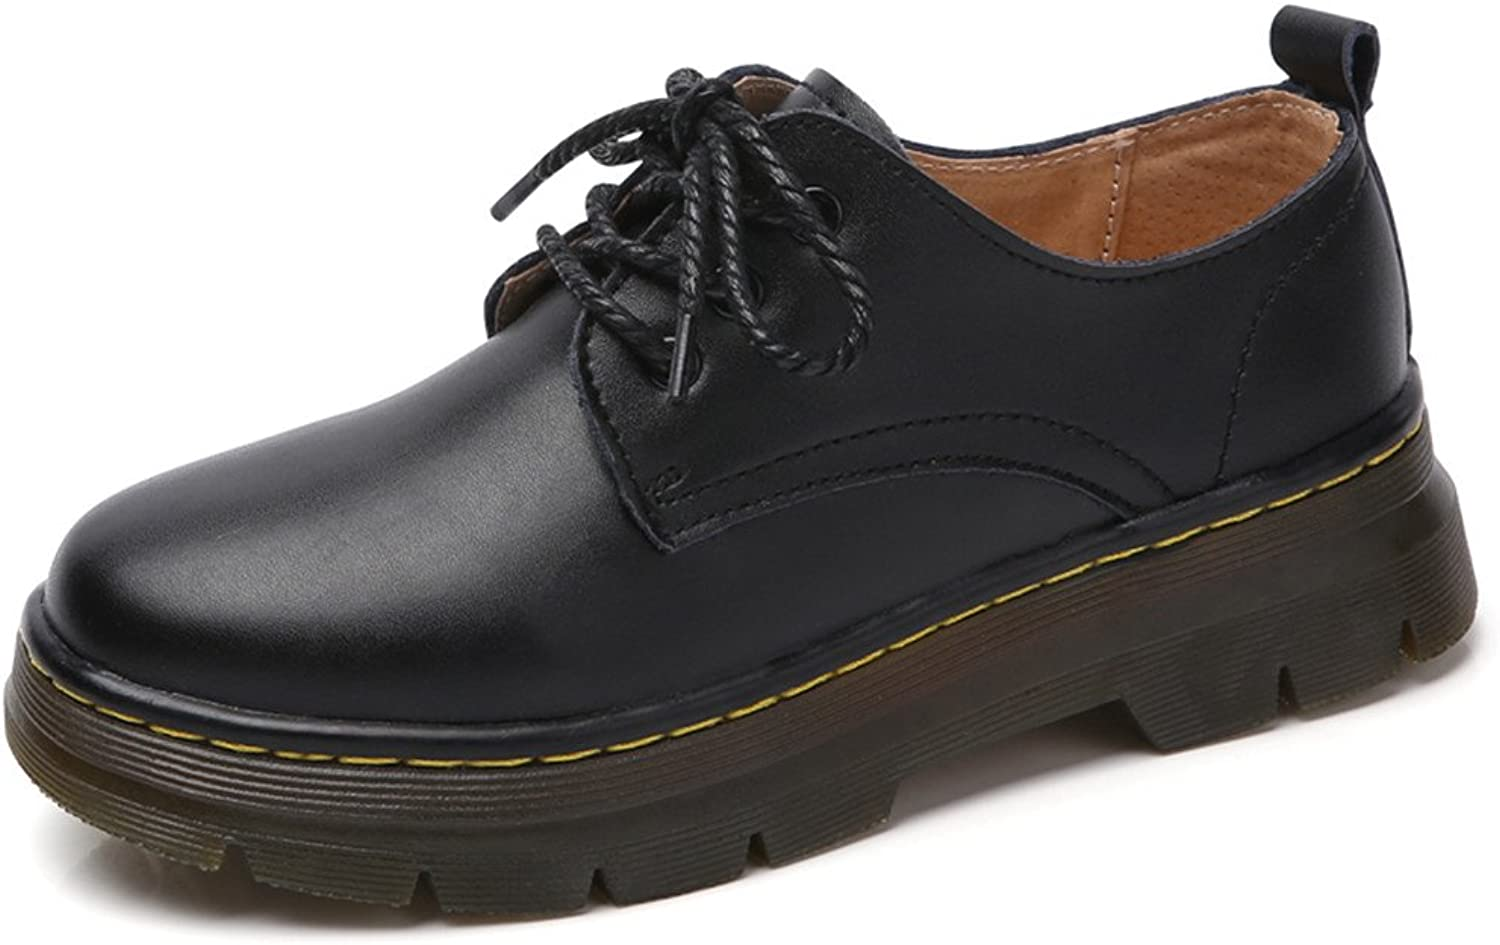 XDX Taste Of Life Black Leather Women's Flat Vintage Oxfords shoes Brogues Lace-up Patent